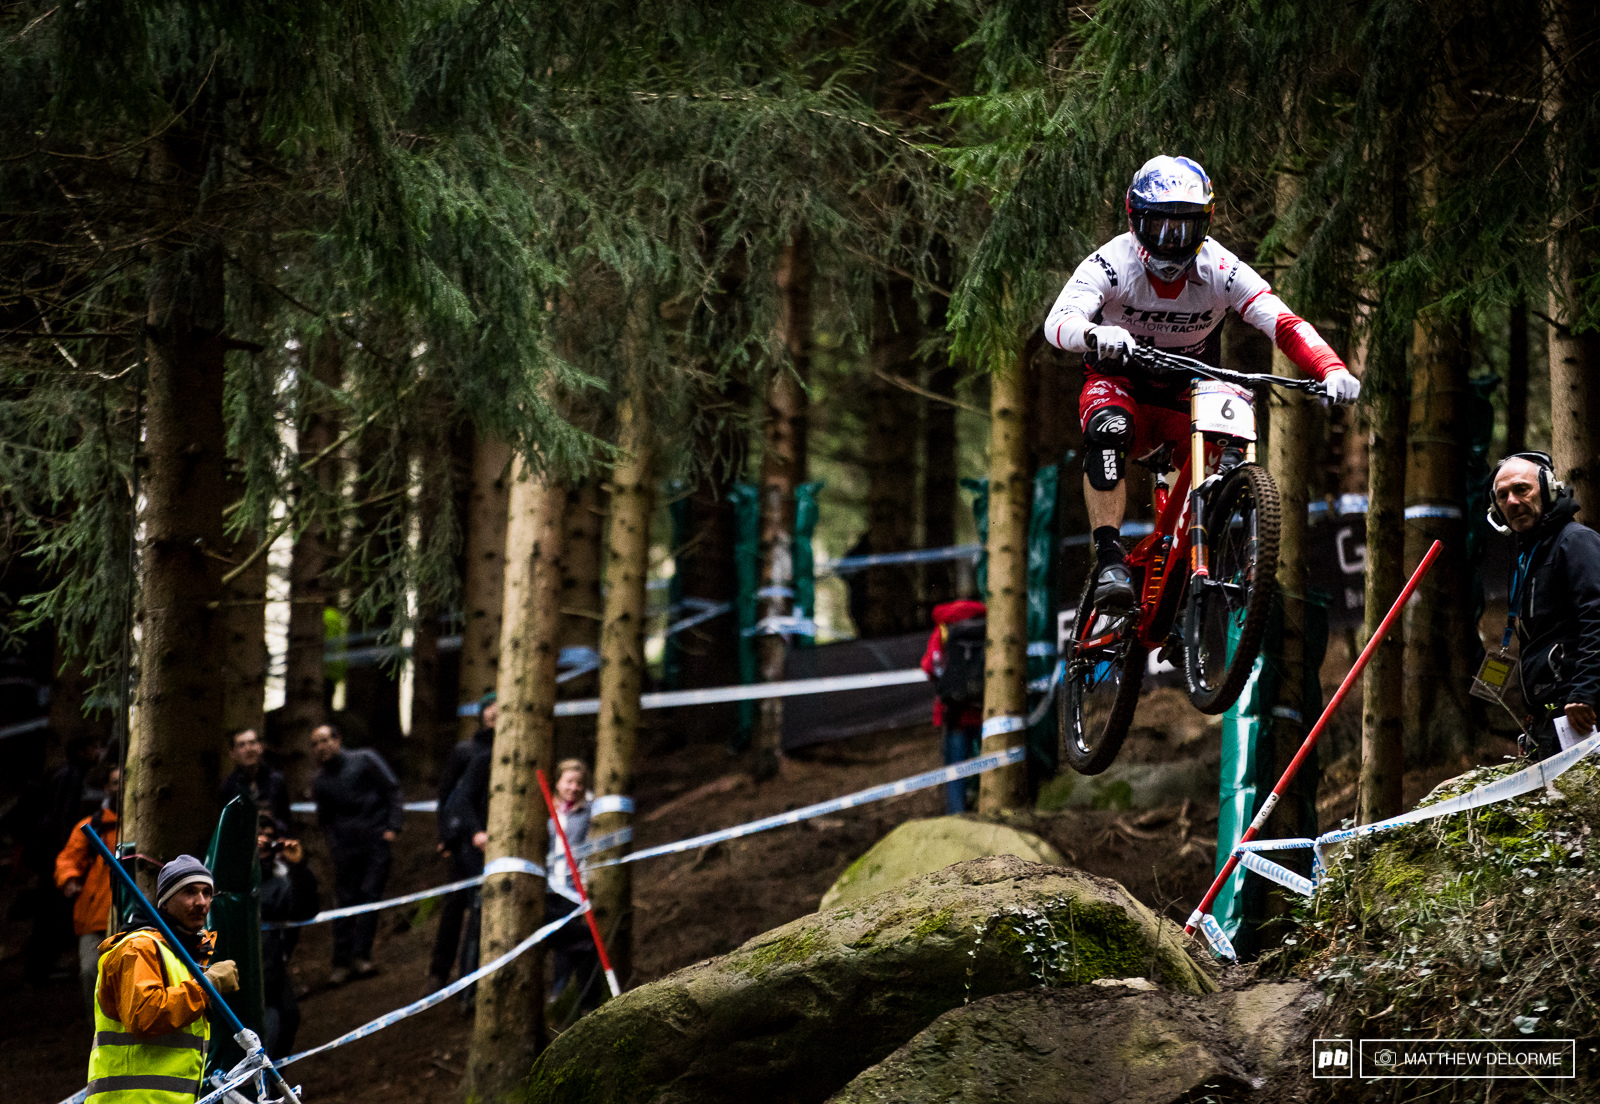 Gee Atherton hucked the rock drop clearing all the gnarled roots below. Gee qualified third.